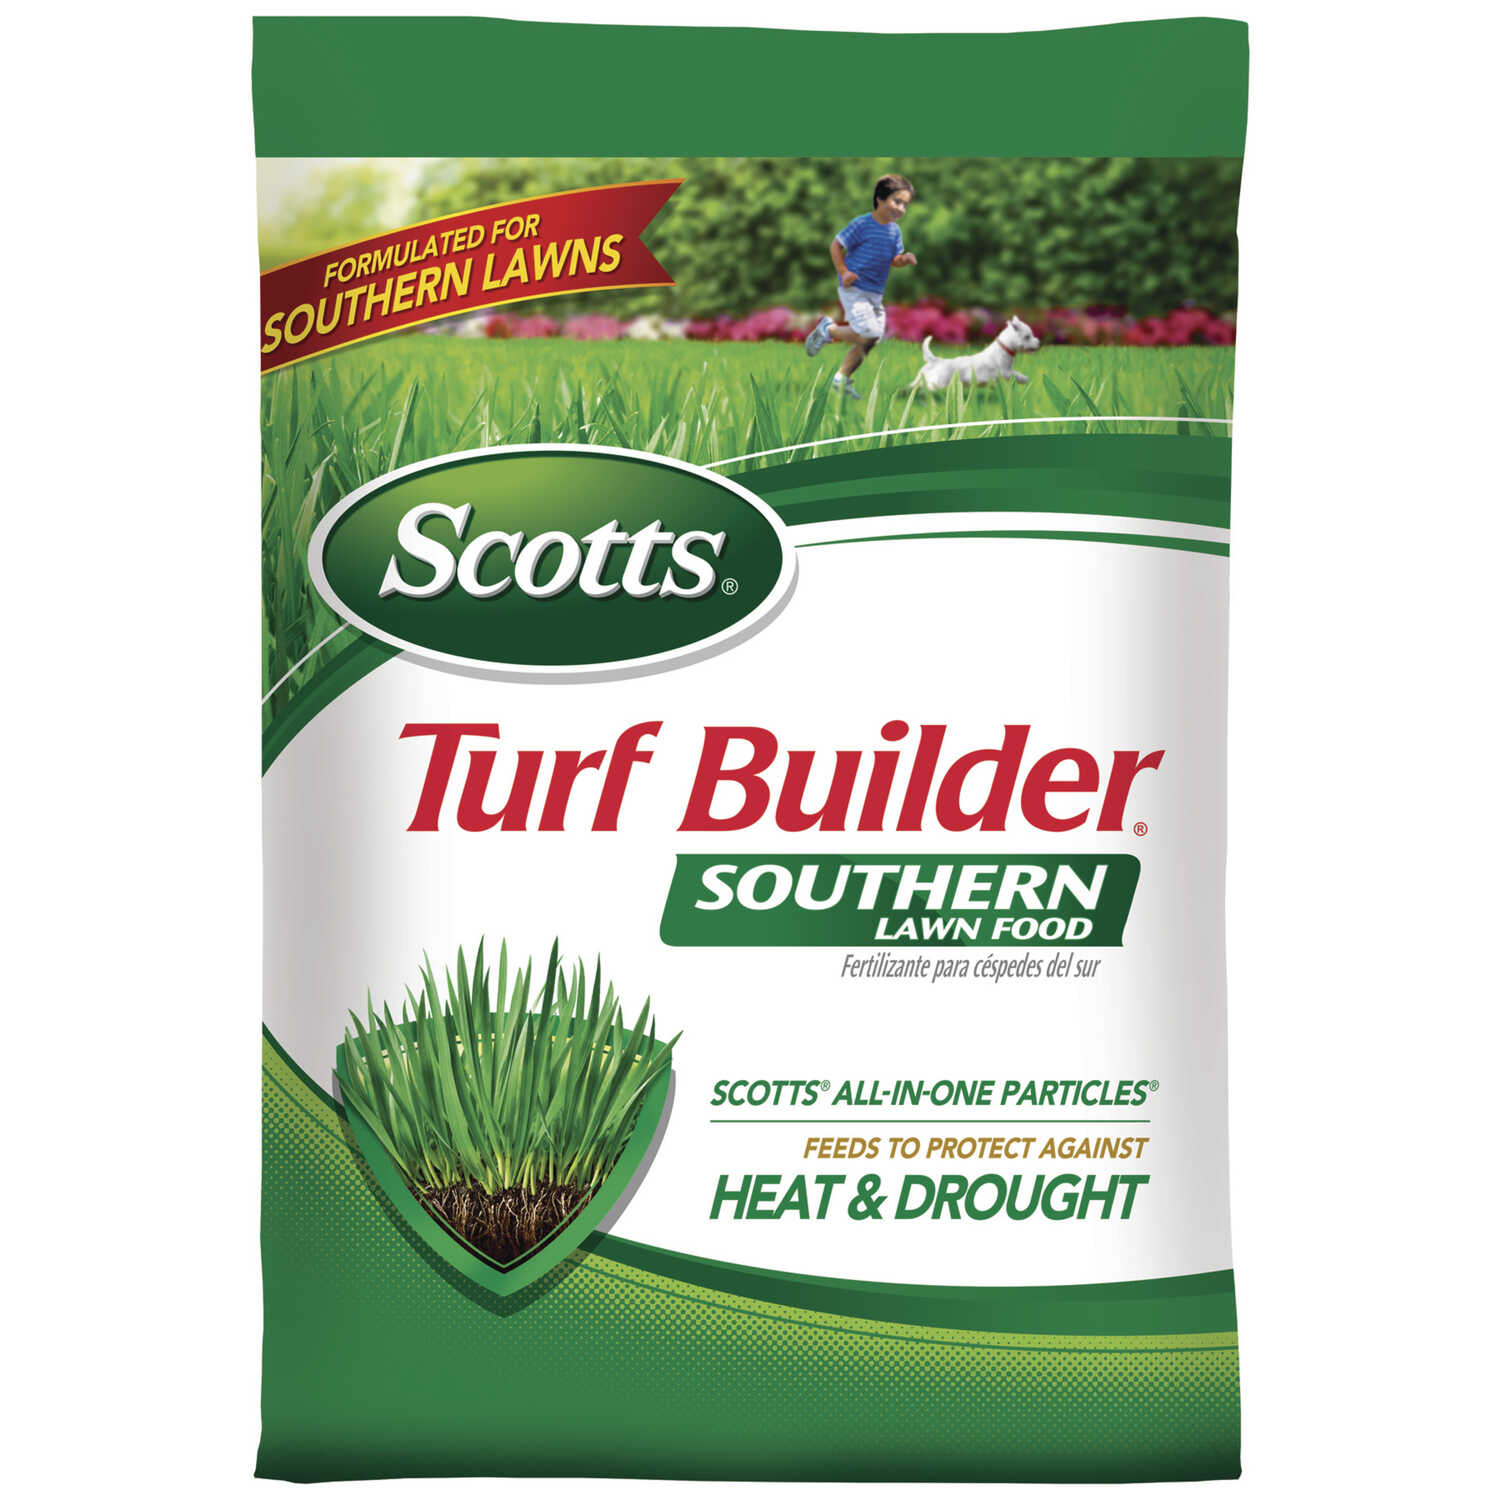 Scotts  Turf Builder  32-0-10  Lawn Food  For Southern 44.8 lb. 15000 sq. ft.